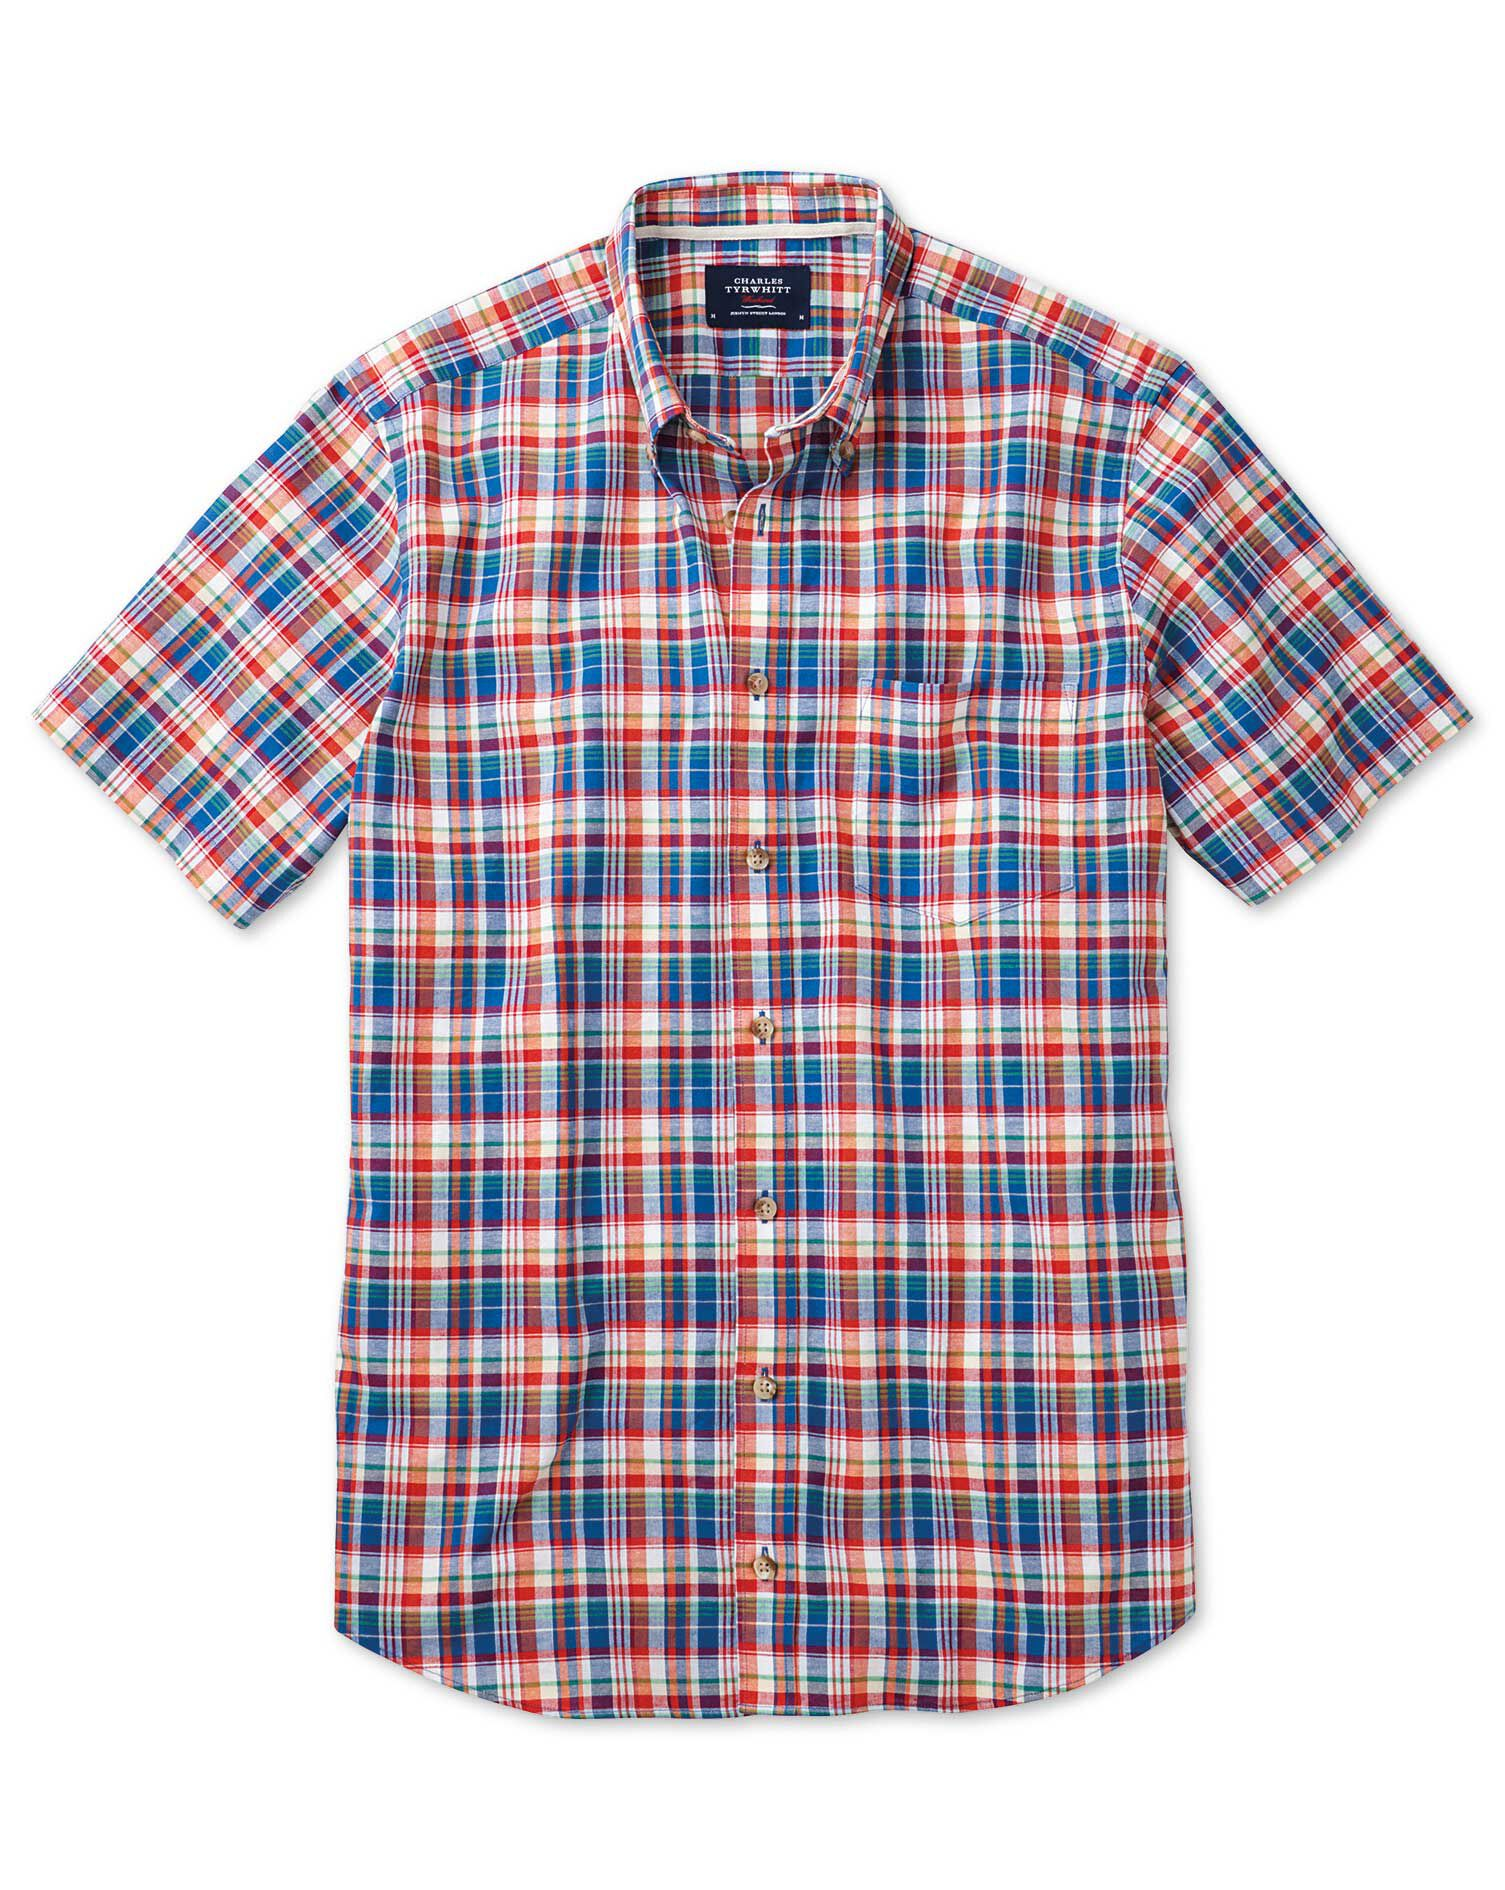 Slim Fit Short Sleeve Orange and Blue Check Cotton Shirt Single Cuff Size Small by Charles Tyrwhitt